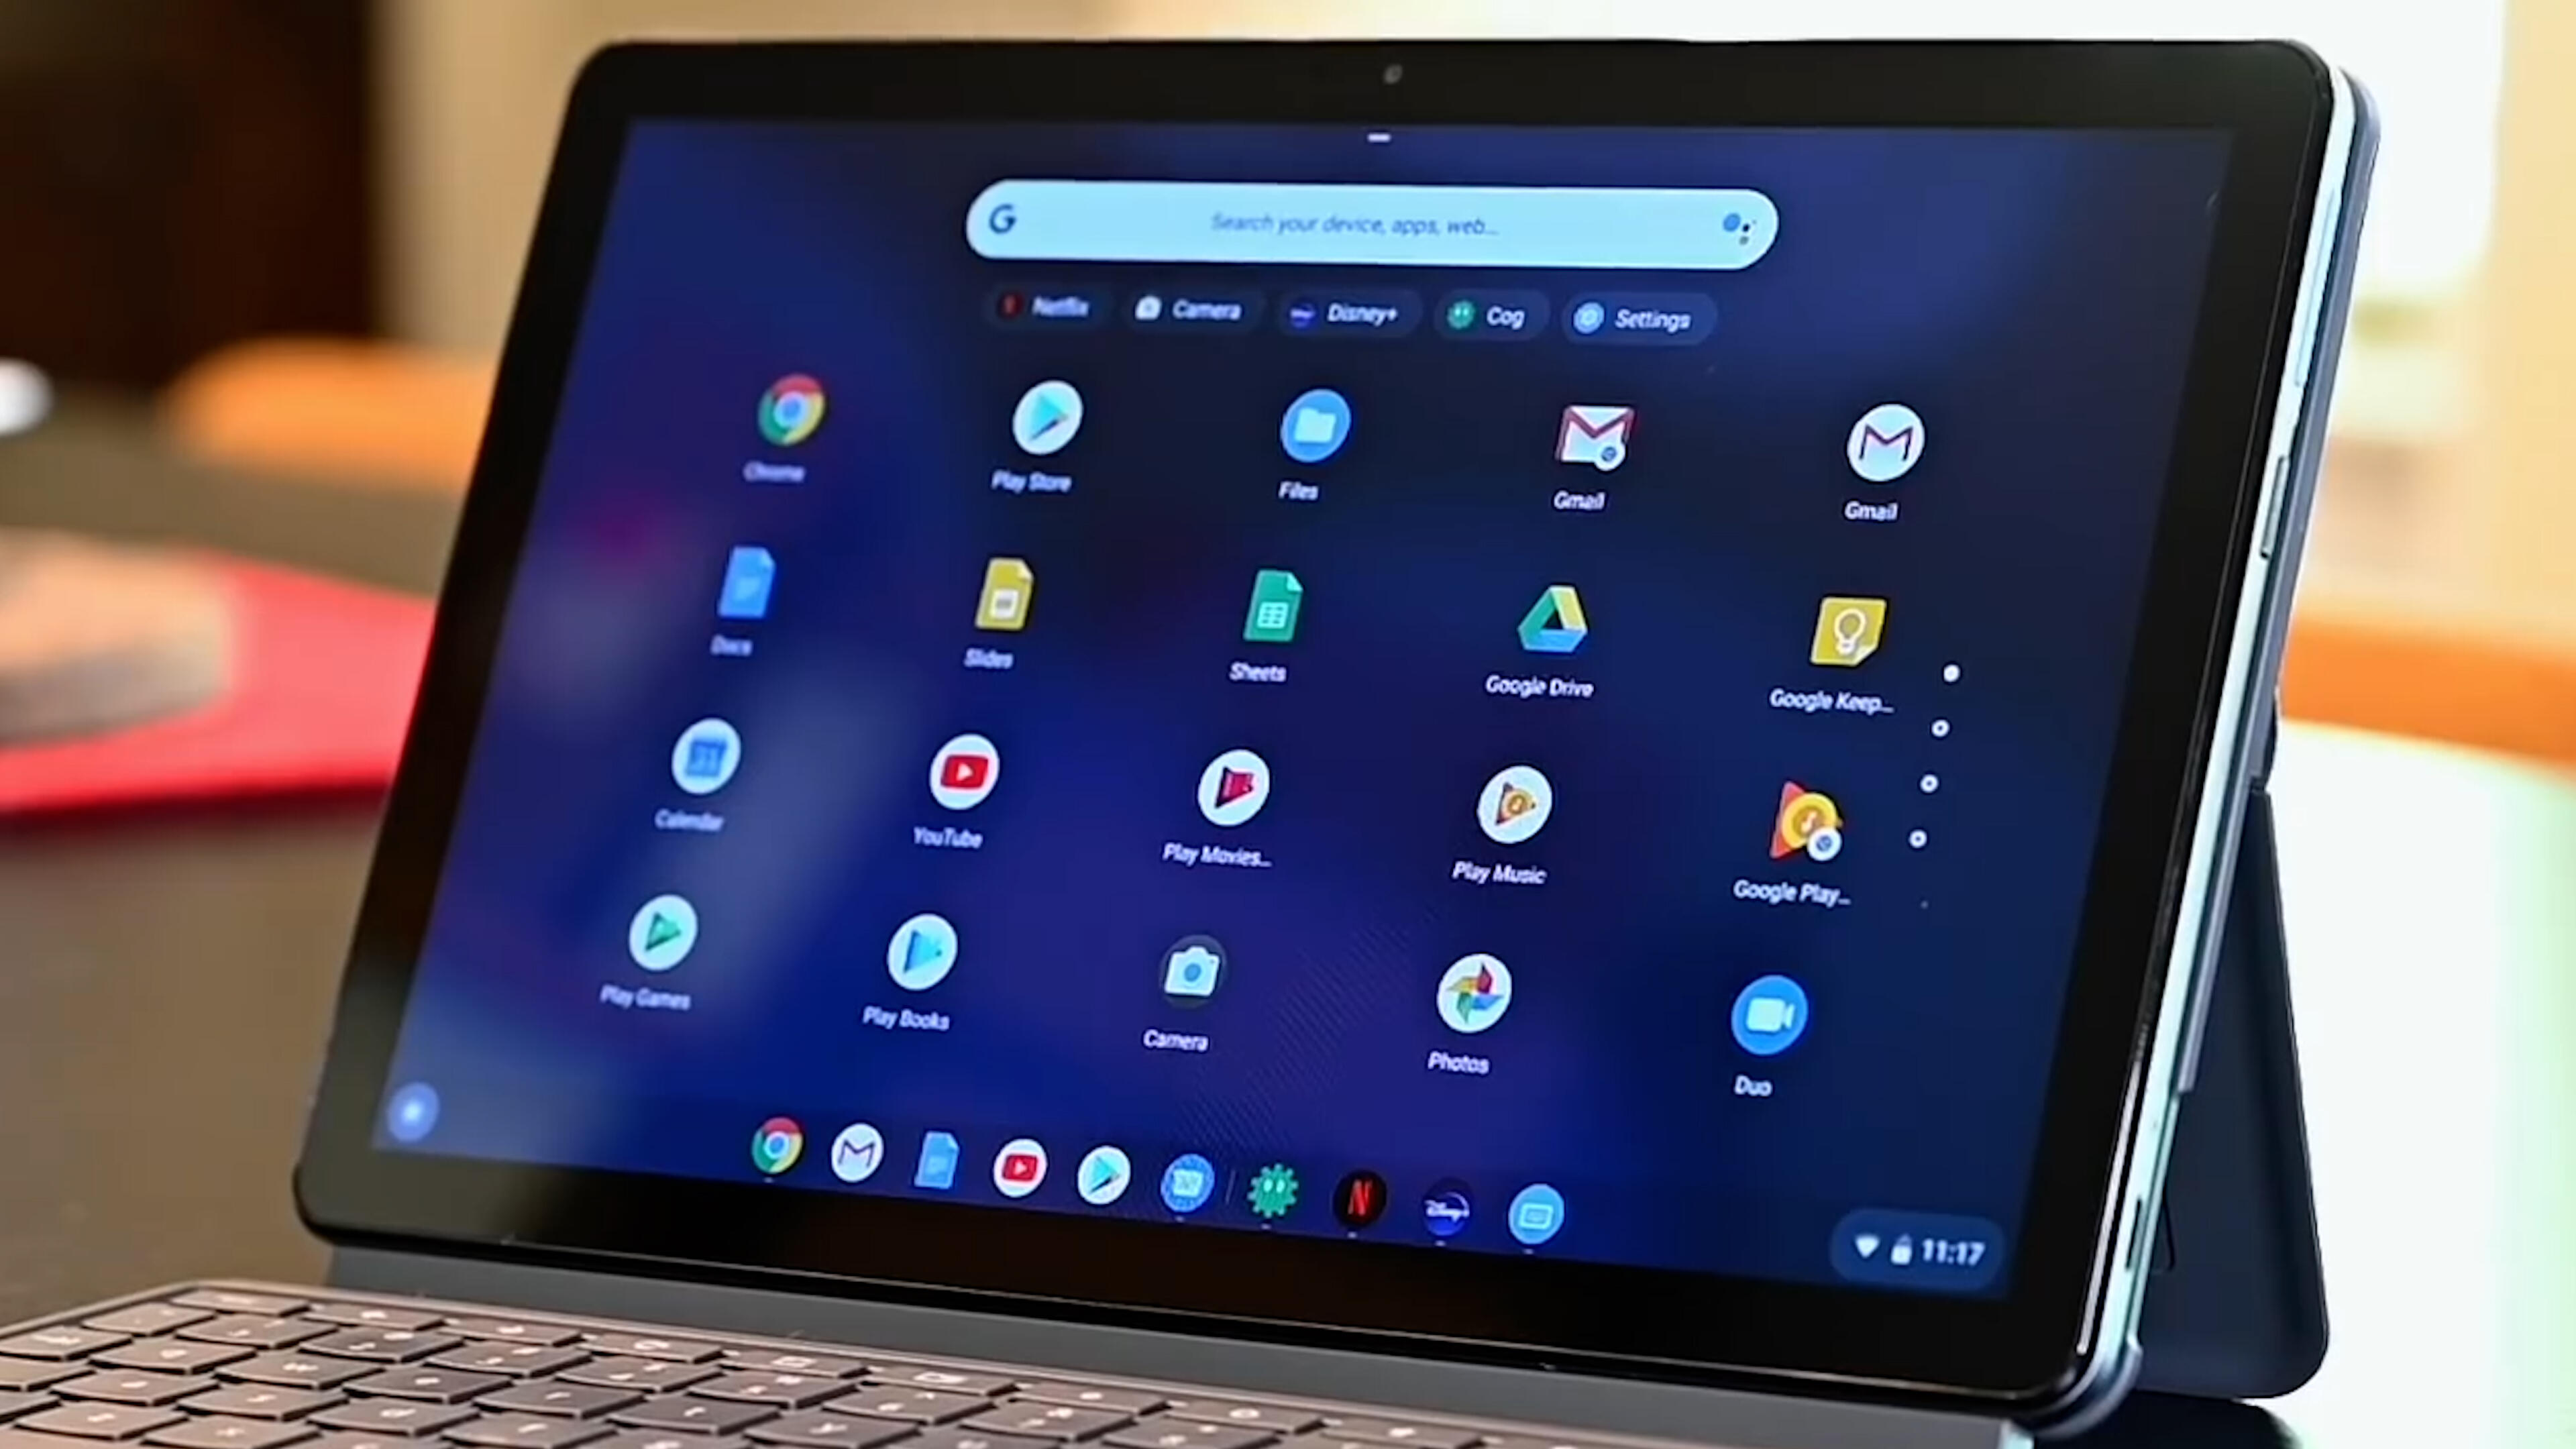 Video: Chromebooks get new features